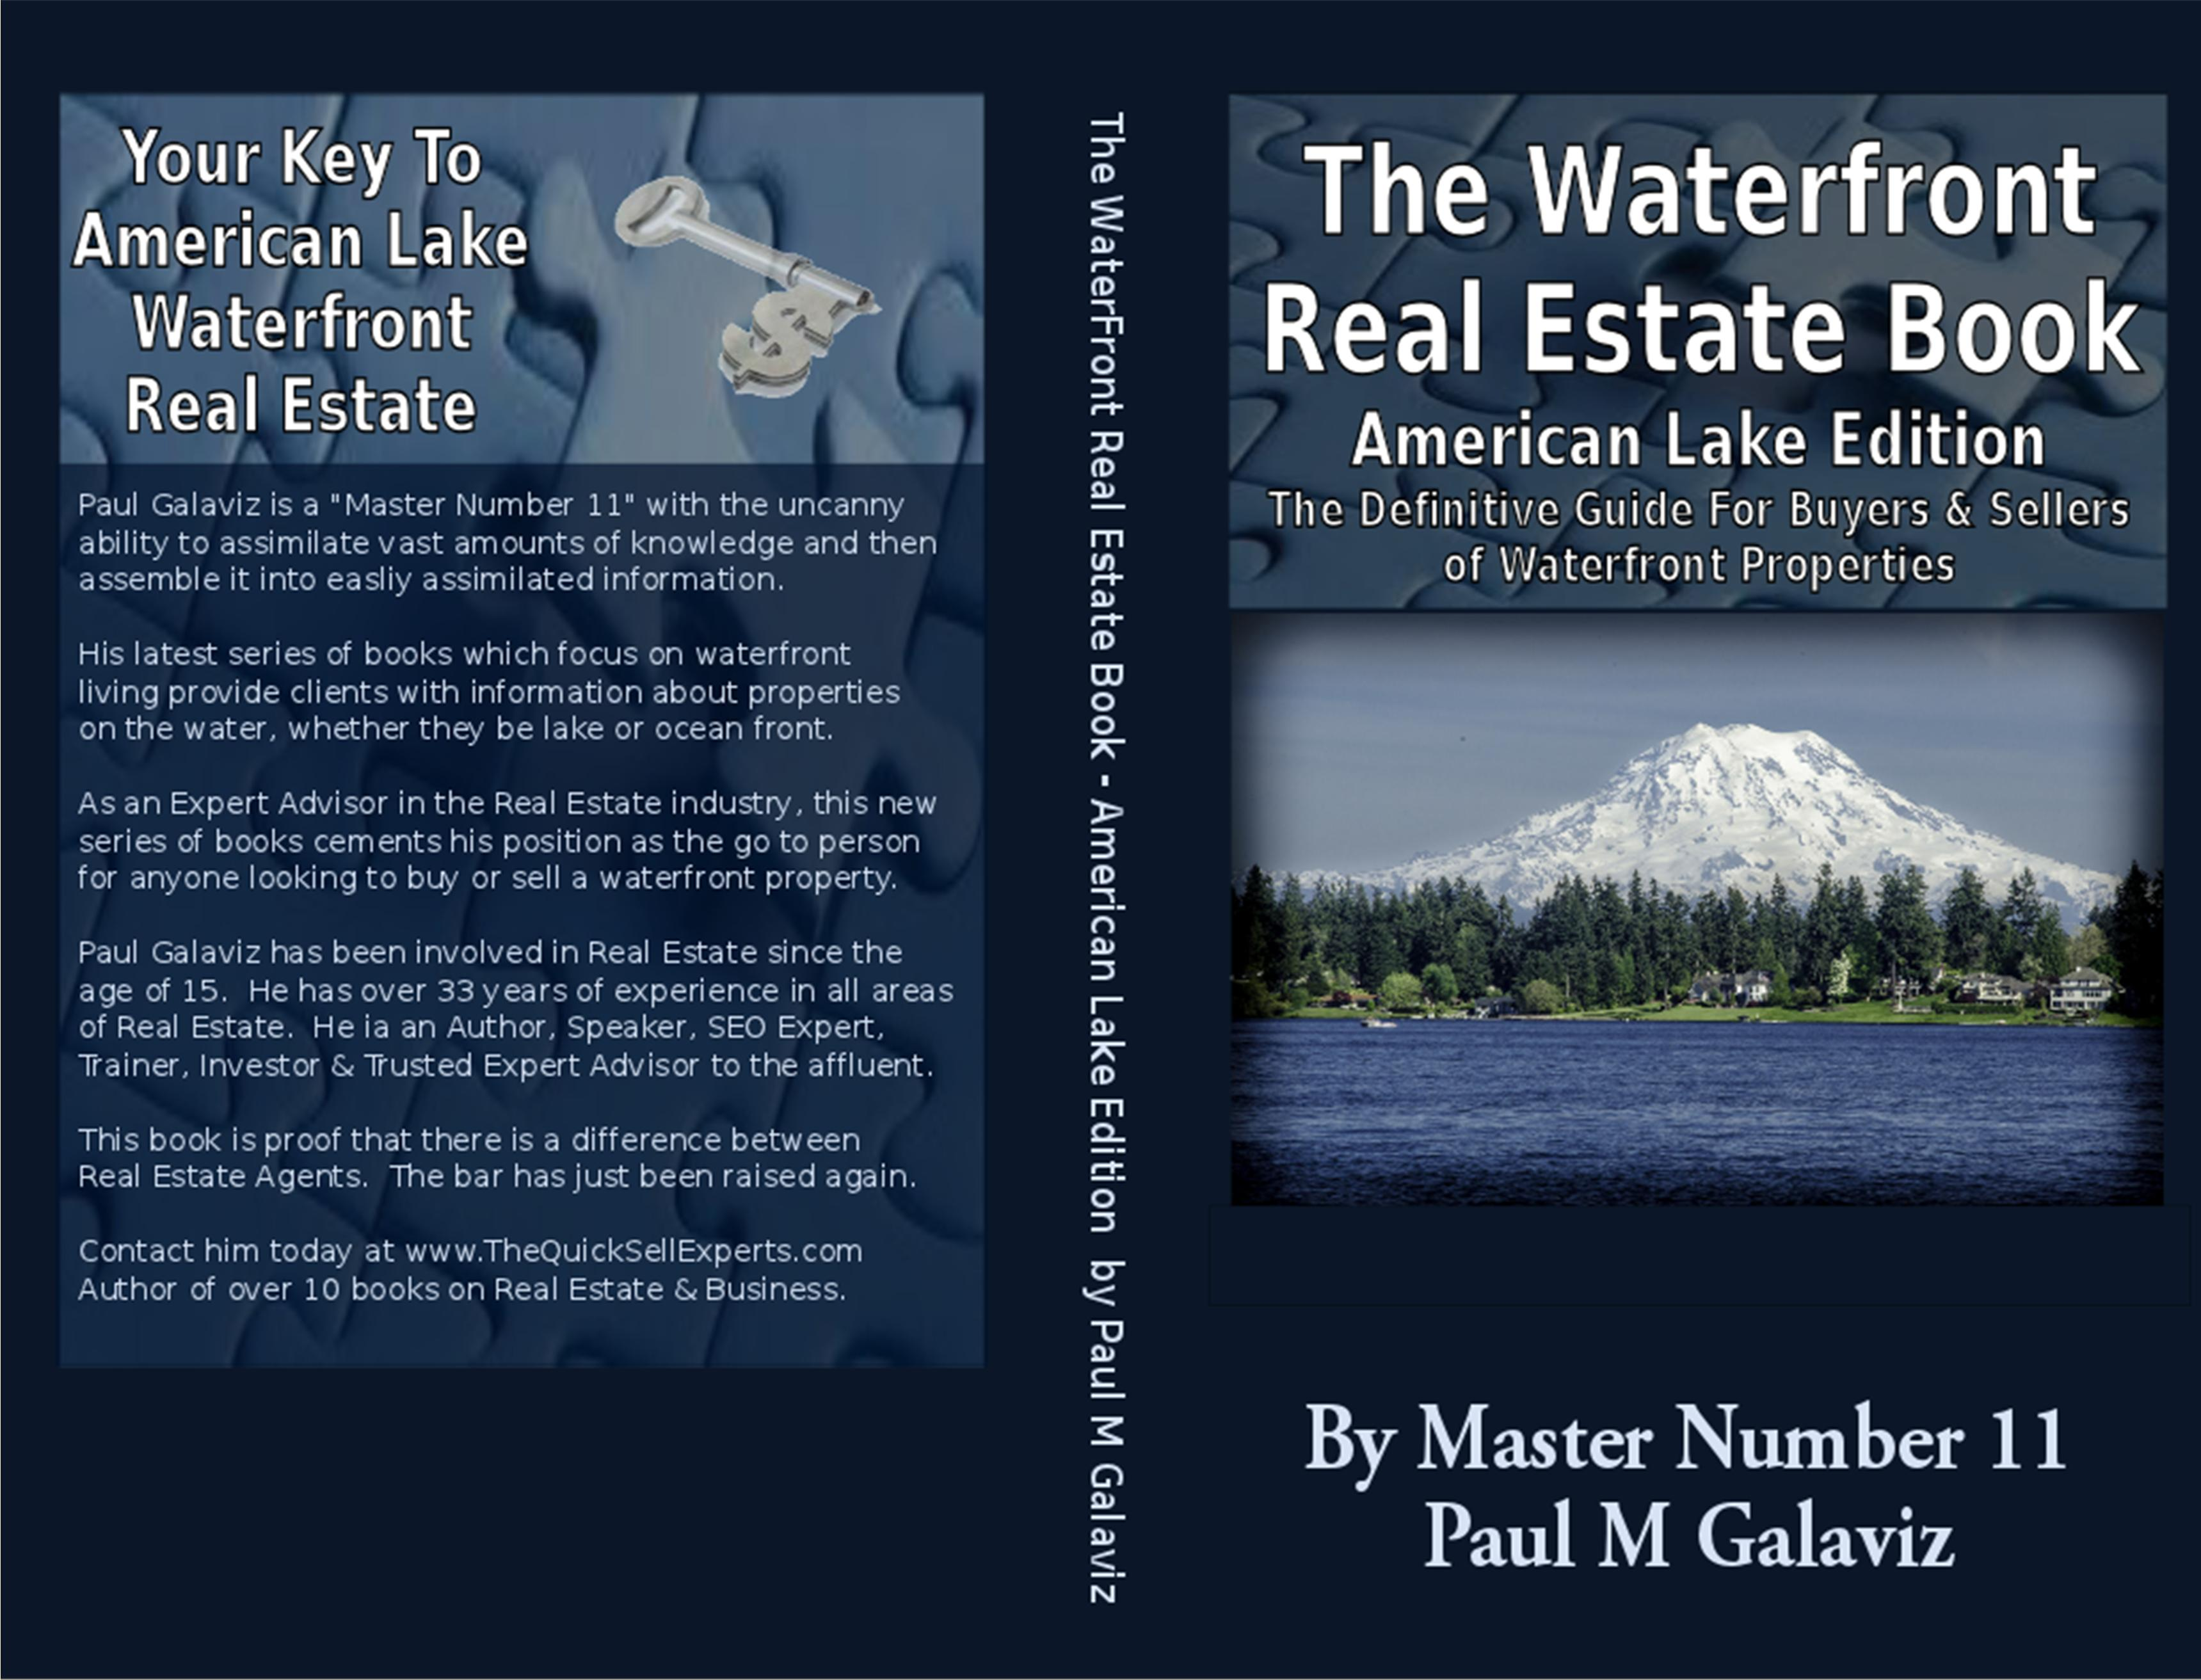 The Waterfront Real Estate Book-American Lake Edition cover image